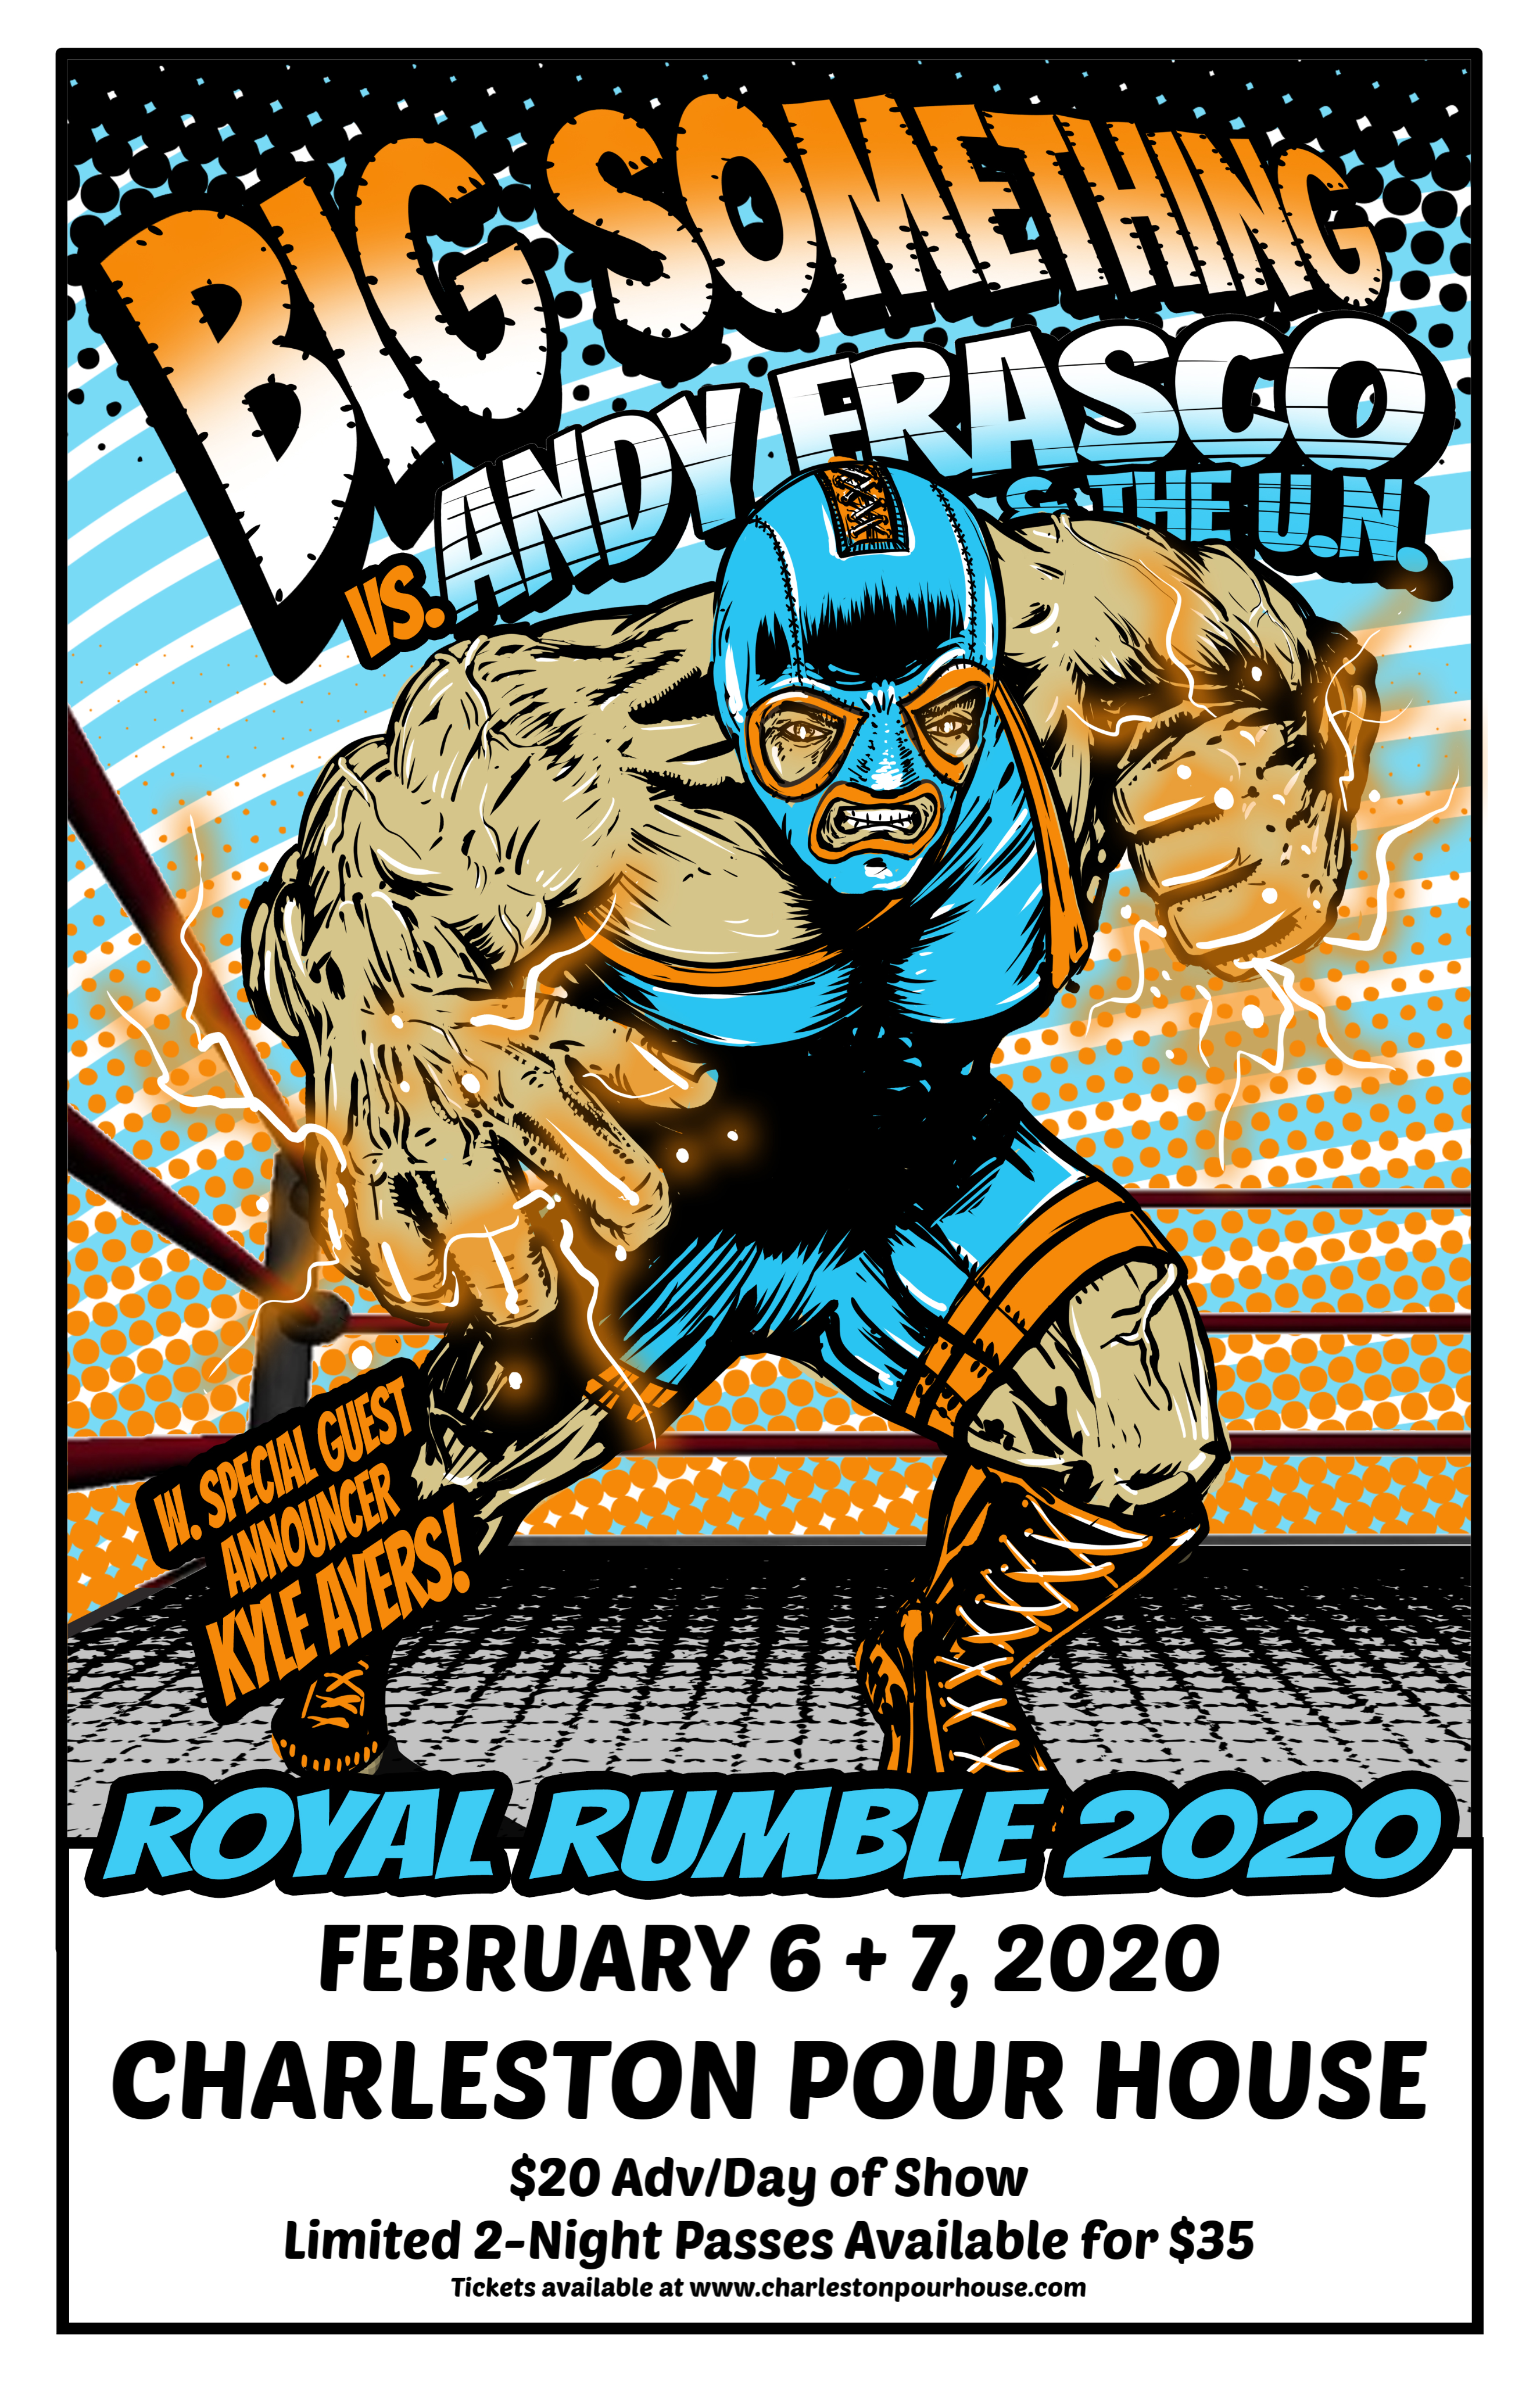 Big Something Andy Frasco The Un Royal Rumble 2020 2 6 20 2 7 20 Special Guest Royal Rumble Music Venue